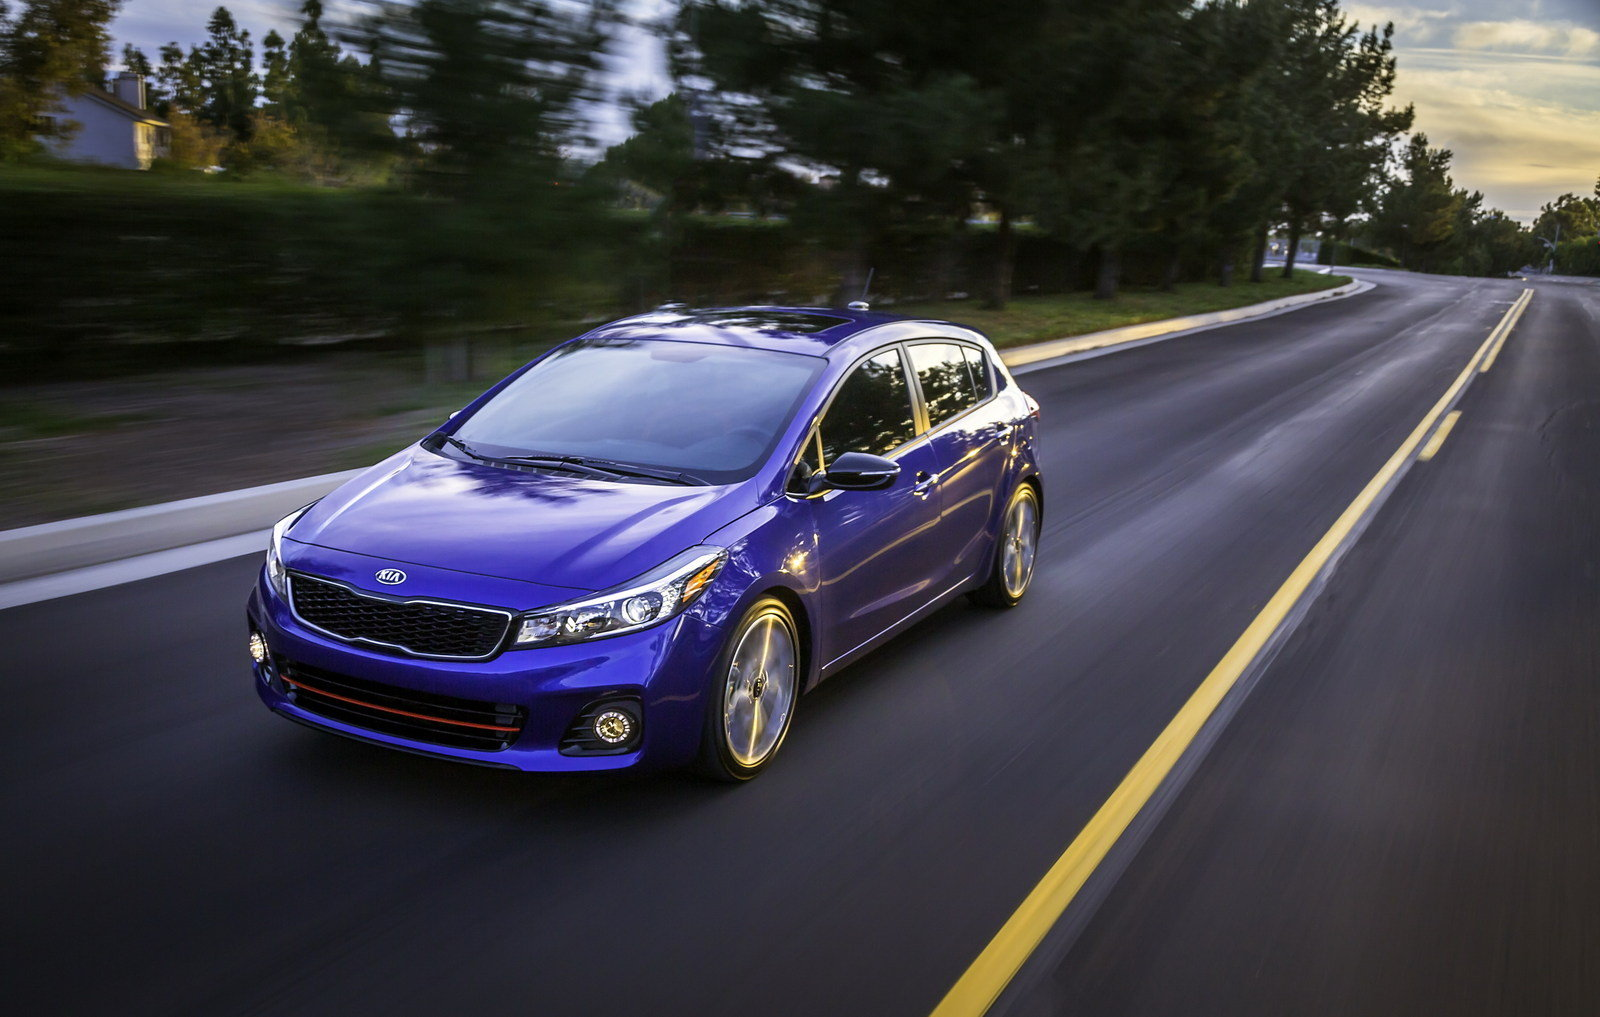 2017 kia forte5 picture 661747 car review top speed. Black Bedroom Furniture Sets. Home Design Ideas